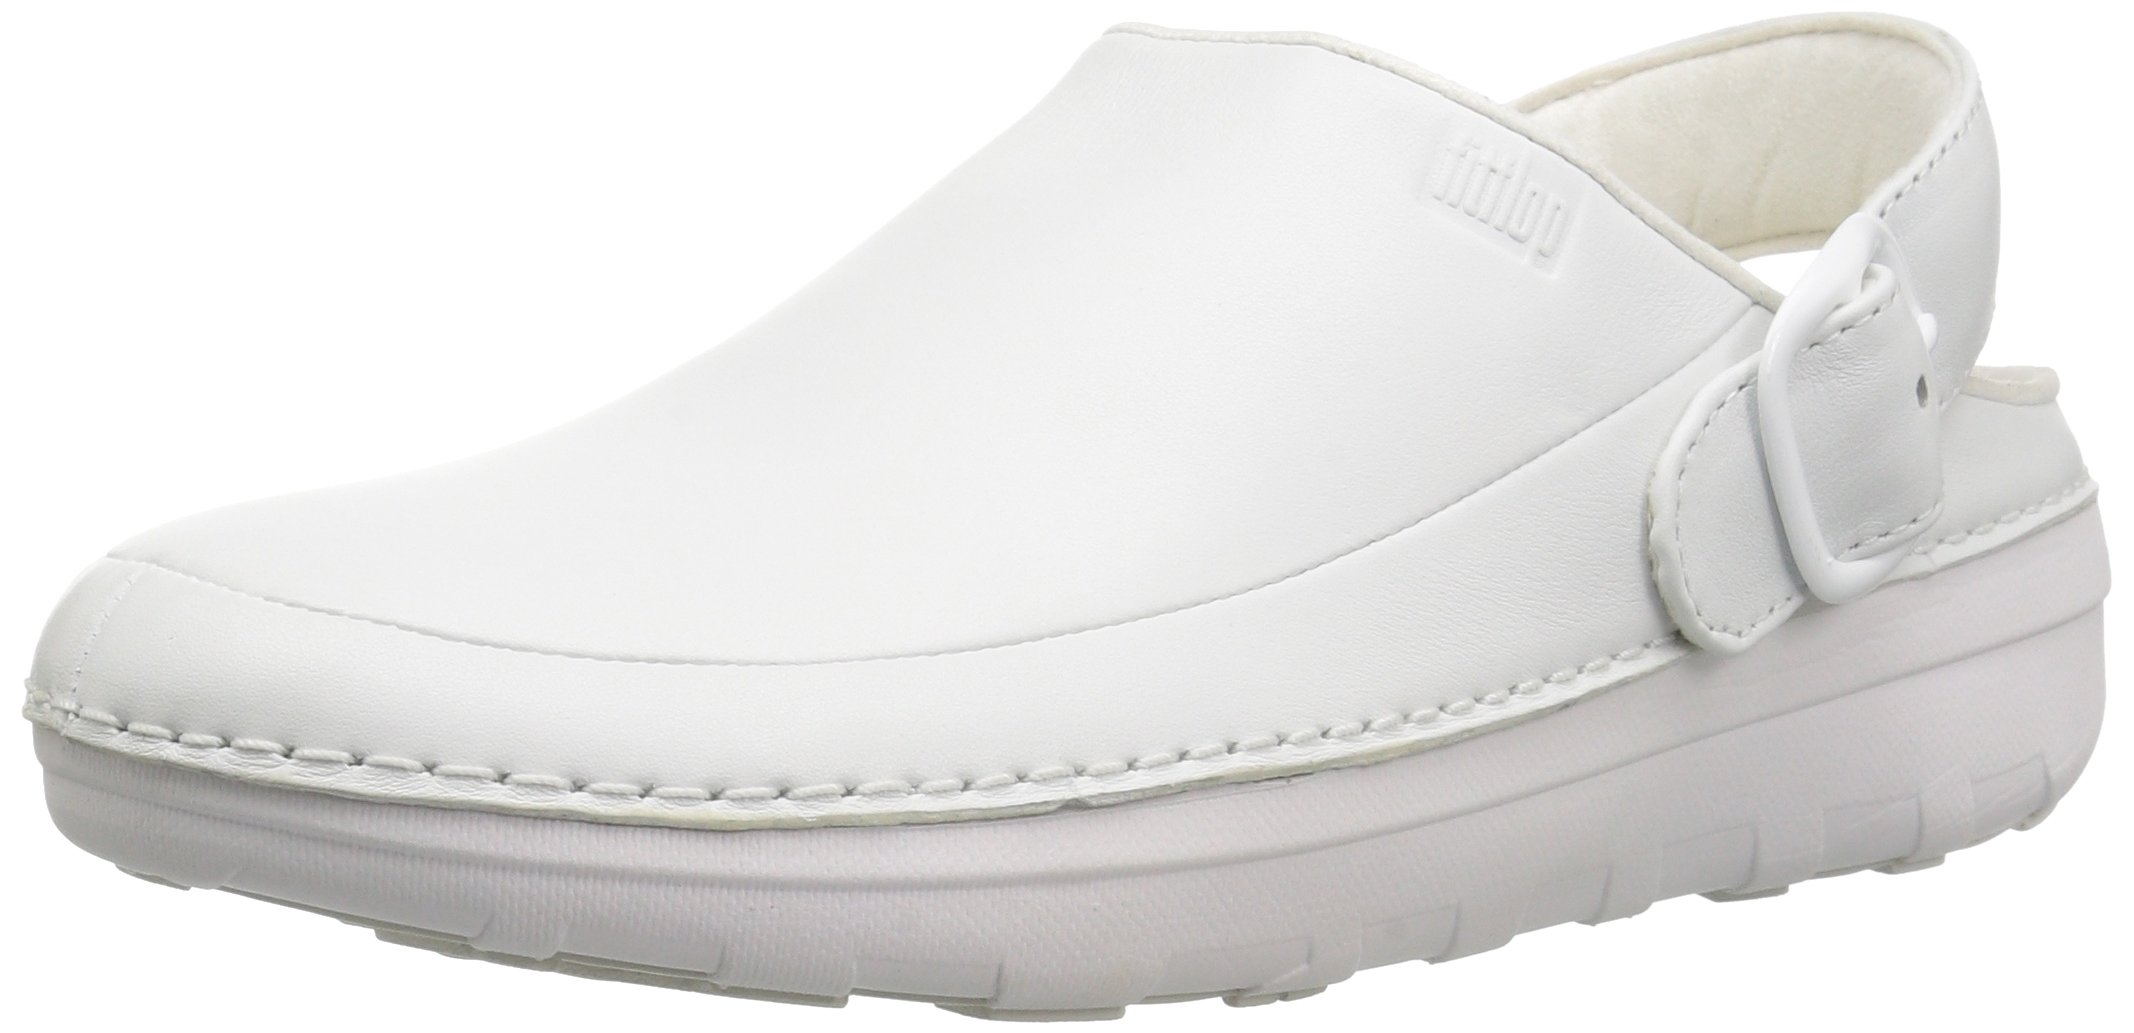 FitFlop Men's Gogh Pro in Leather Medical Professional Shoe, Urban White, 10 M US